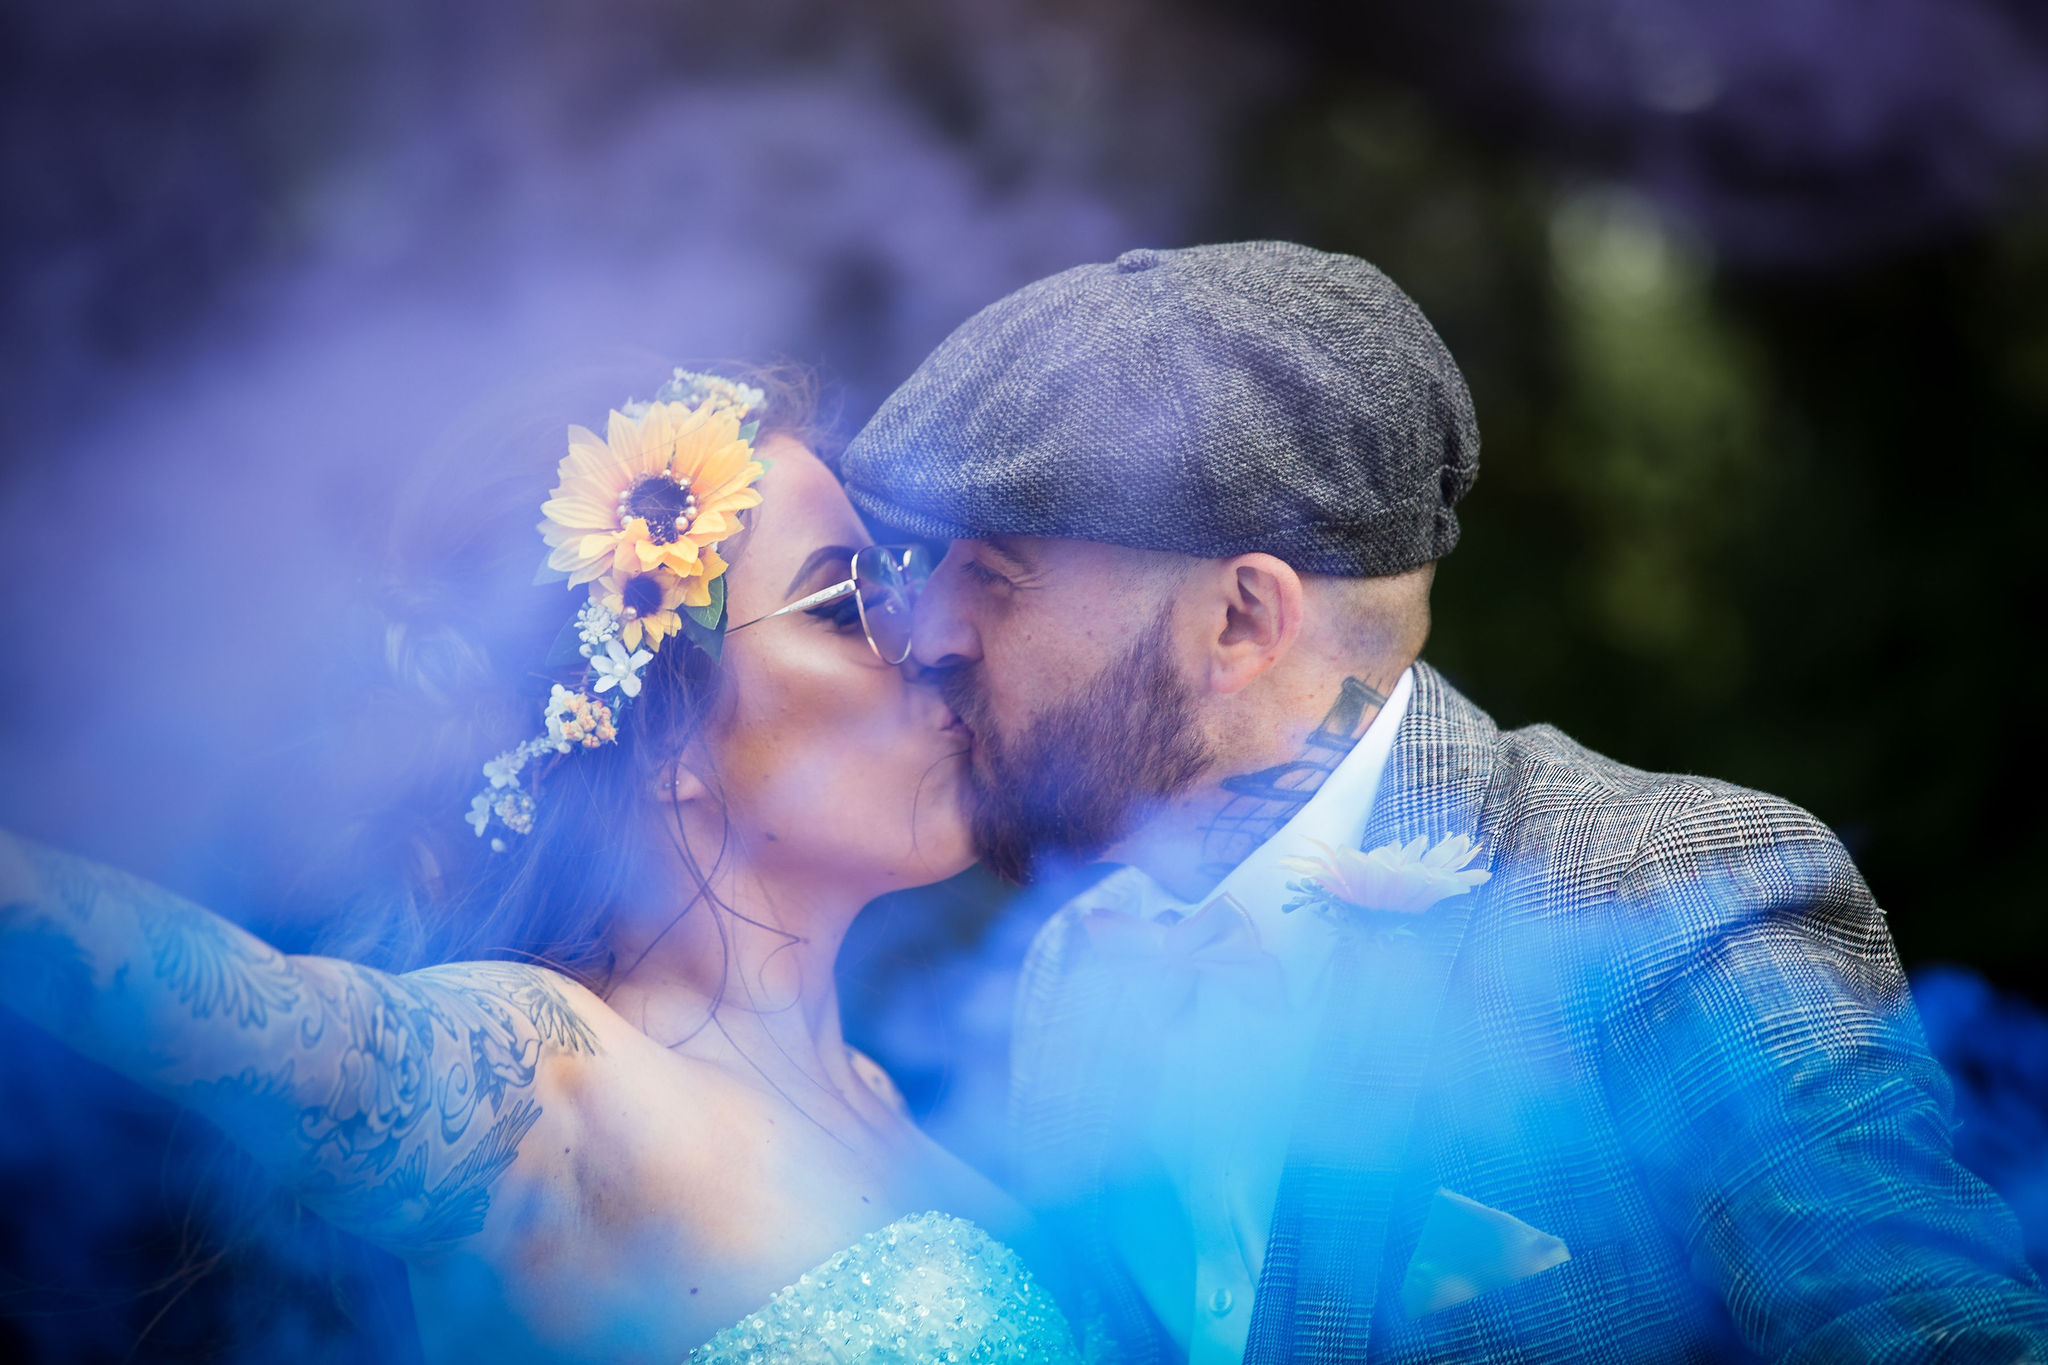 Harriet&Rhys Wedding - alternative wedding couple shot with smokebombs - tattooed bride